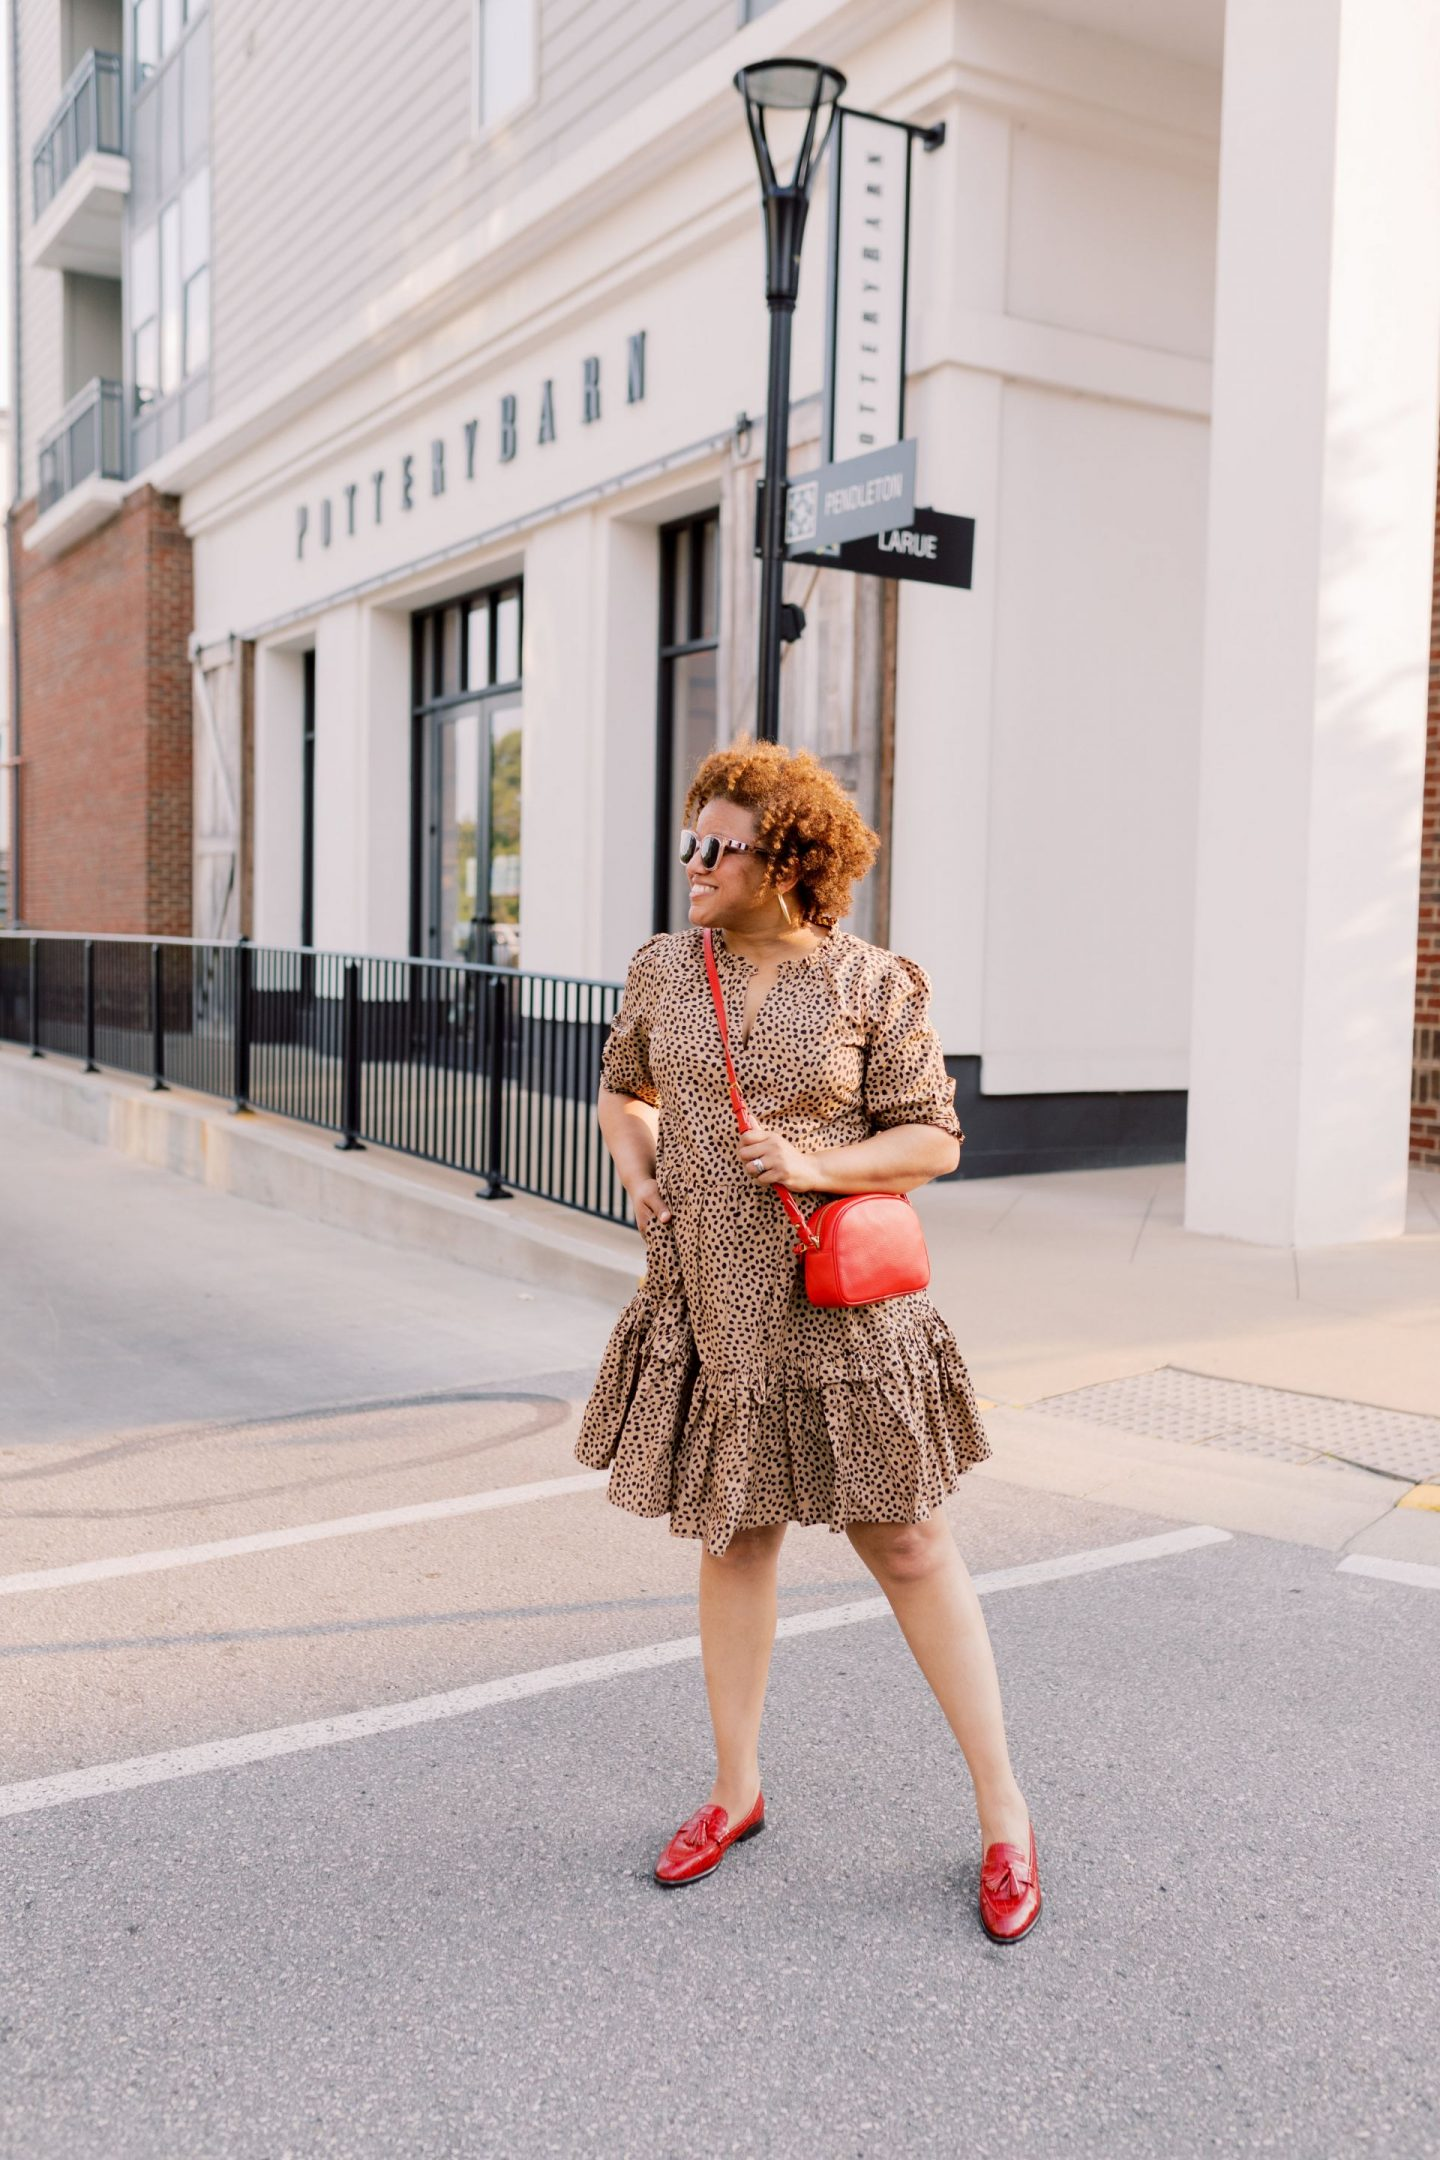 Red Loafers by popular Kentucky fashion blog, Really Rynetta: image of a woman wearing a J. Crew Ruffleneck tiered popover dress in leopard dot, J.Crew Academy loafers with tassels, Madewell Chunky Large Hoop Earrings MEDIA, and carrying a J. Crew Devon camera bag with detachable strap.